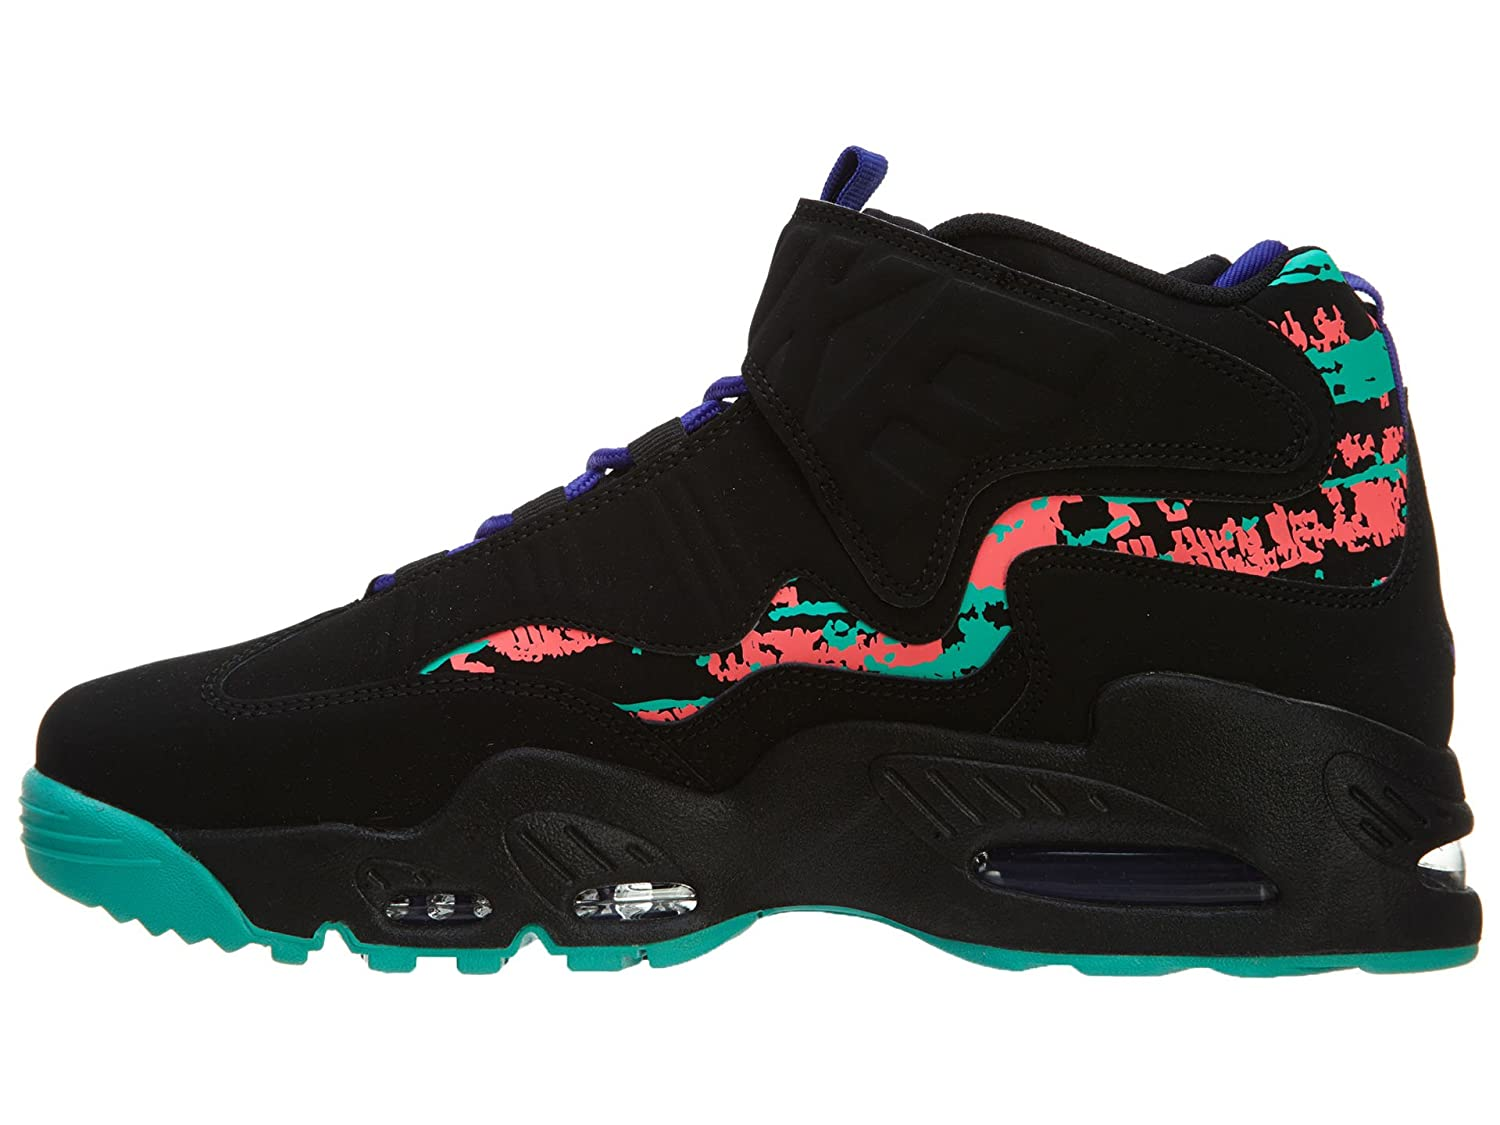 4e015bb4c8 Nike Air Griffey Max 1 Black - Dark Concord - Hyper Jade Mens 11.5:  Amazon.co.uk: Shoes & Bags